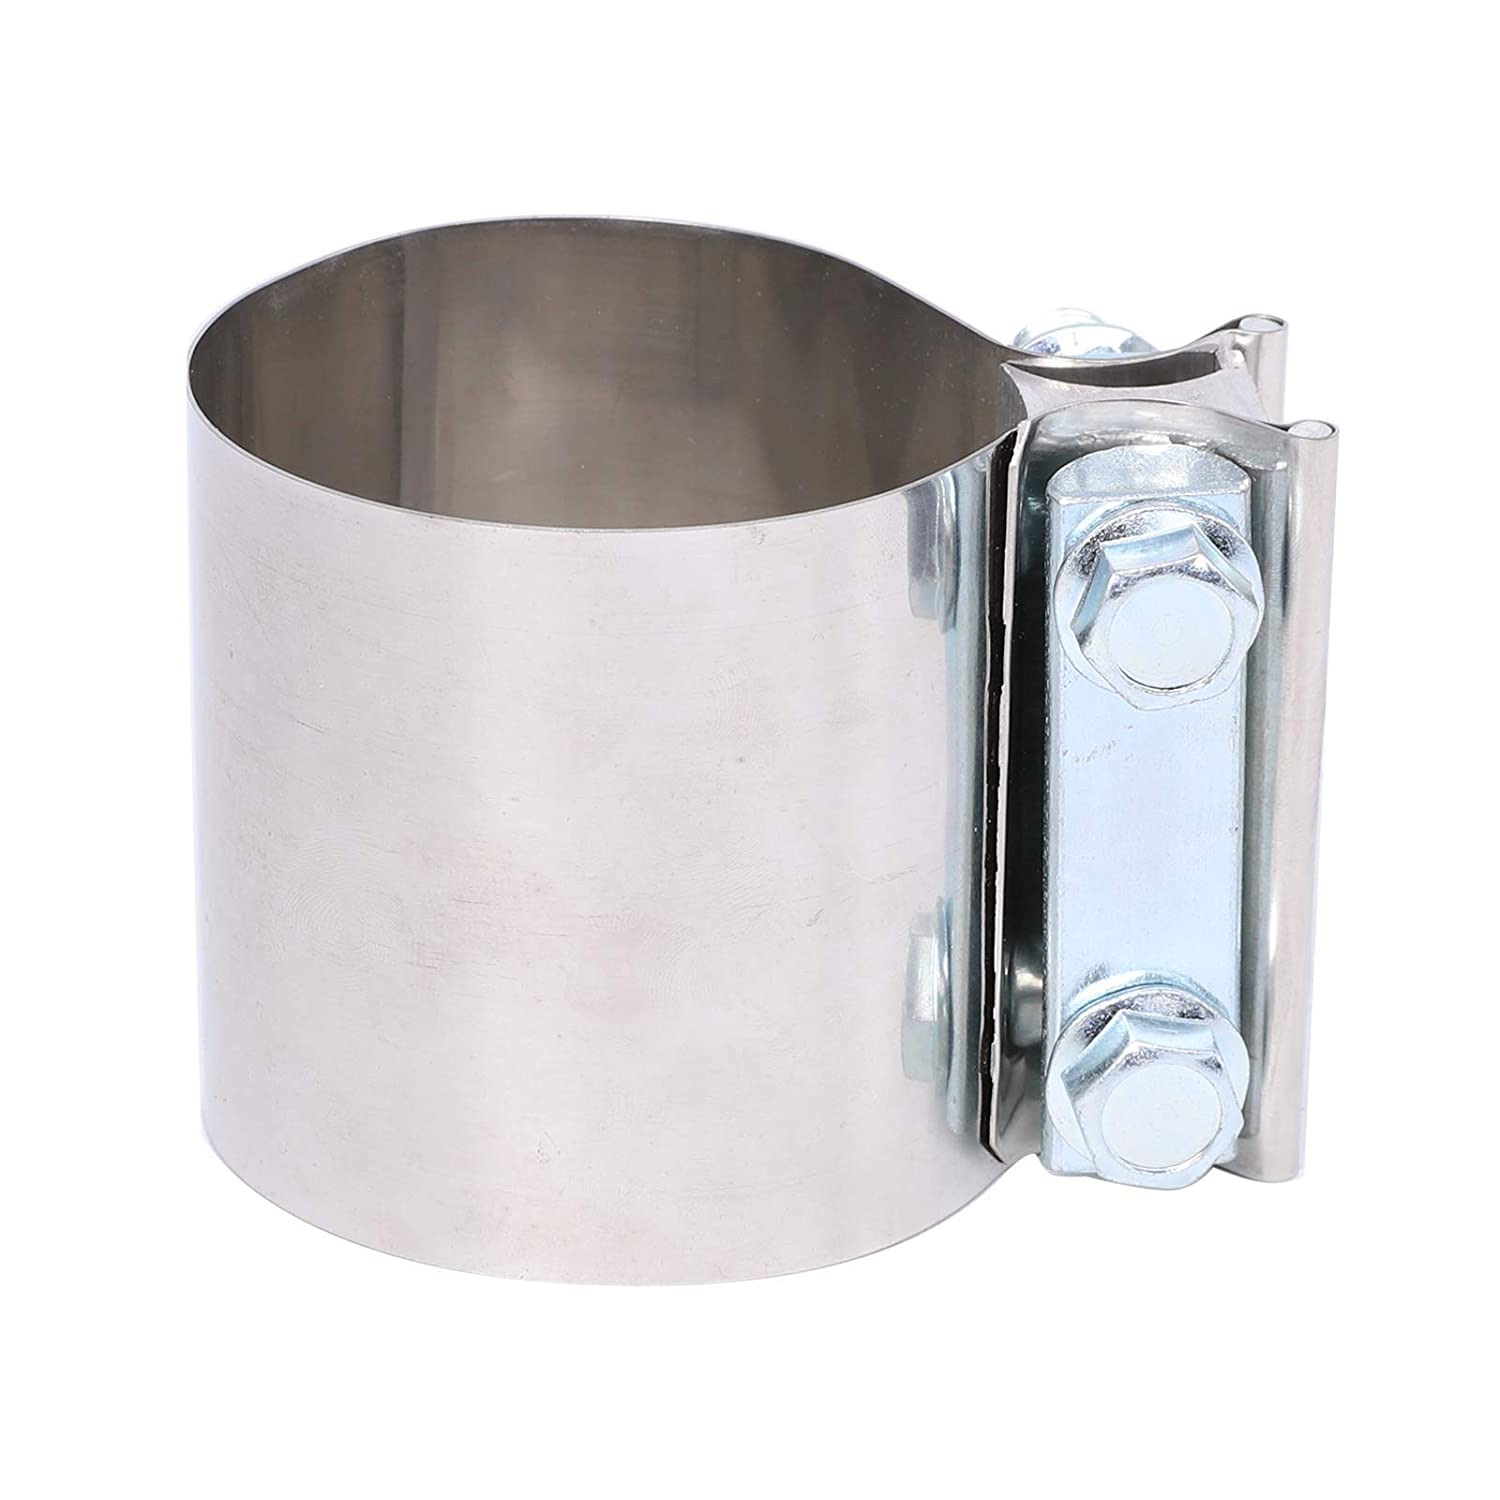 BETTERCLOUD 5 Stainless Steel Butt Joint Band Exhaust Clamp with I Block